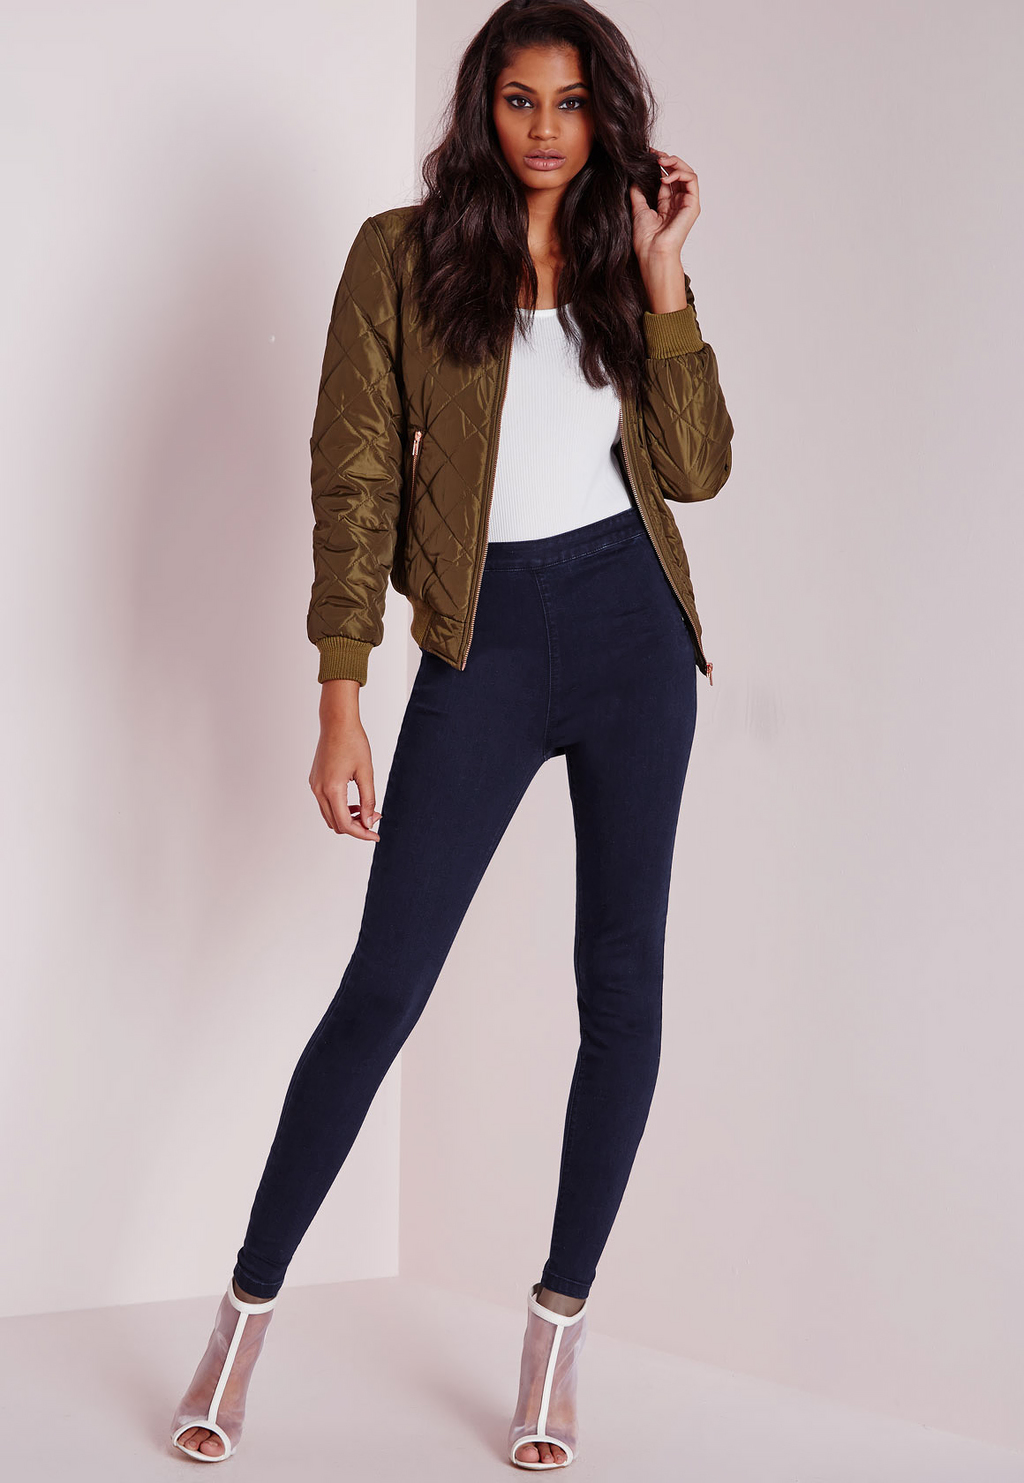 Tall Highwaist Jeans Blue, Blue - style: skinny leg; length: standard; pattern: plain; waist: high rise; predominant colour: navy; occasions: casual; fibres: cotton - stretch; jeans detail: dark wash; texture group: denim; pattern type: fabric; season: a/w 2015; wardrobe: basic